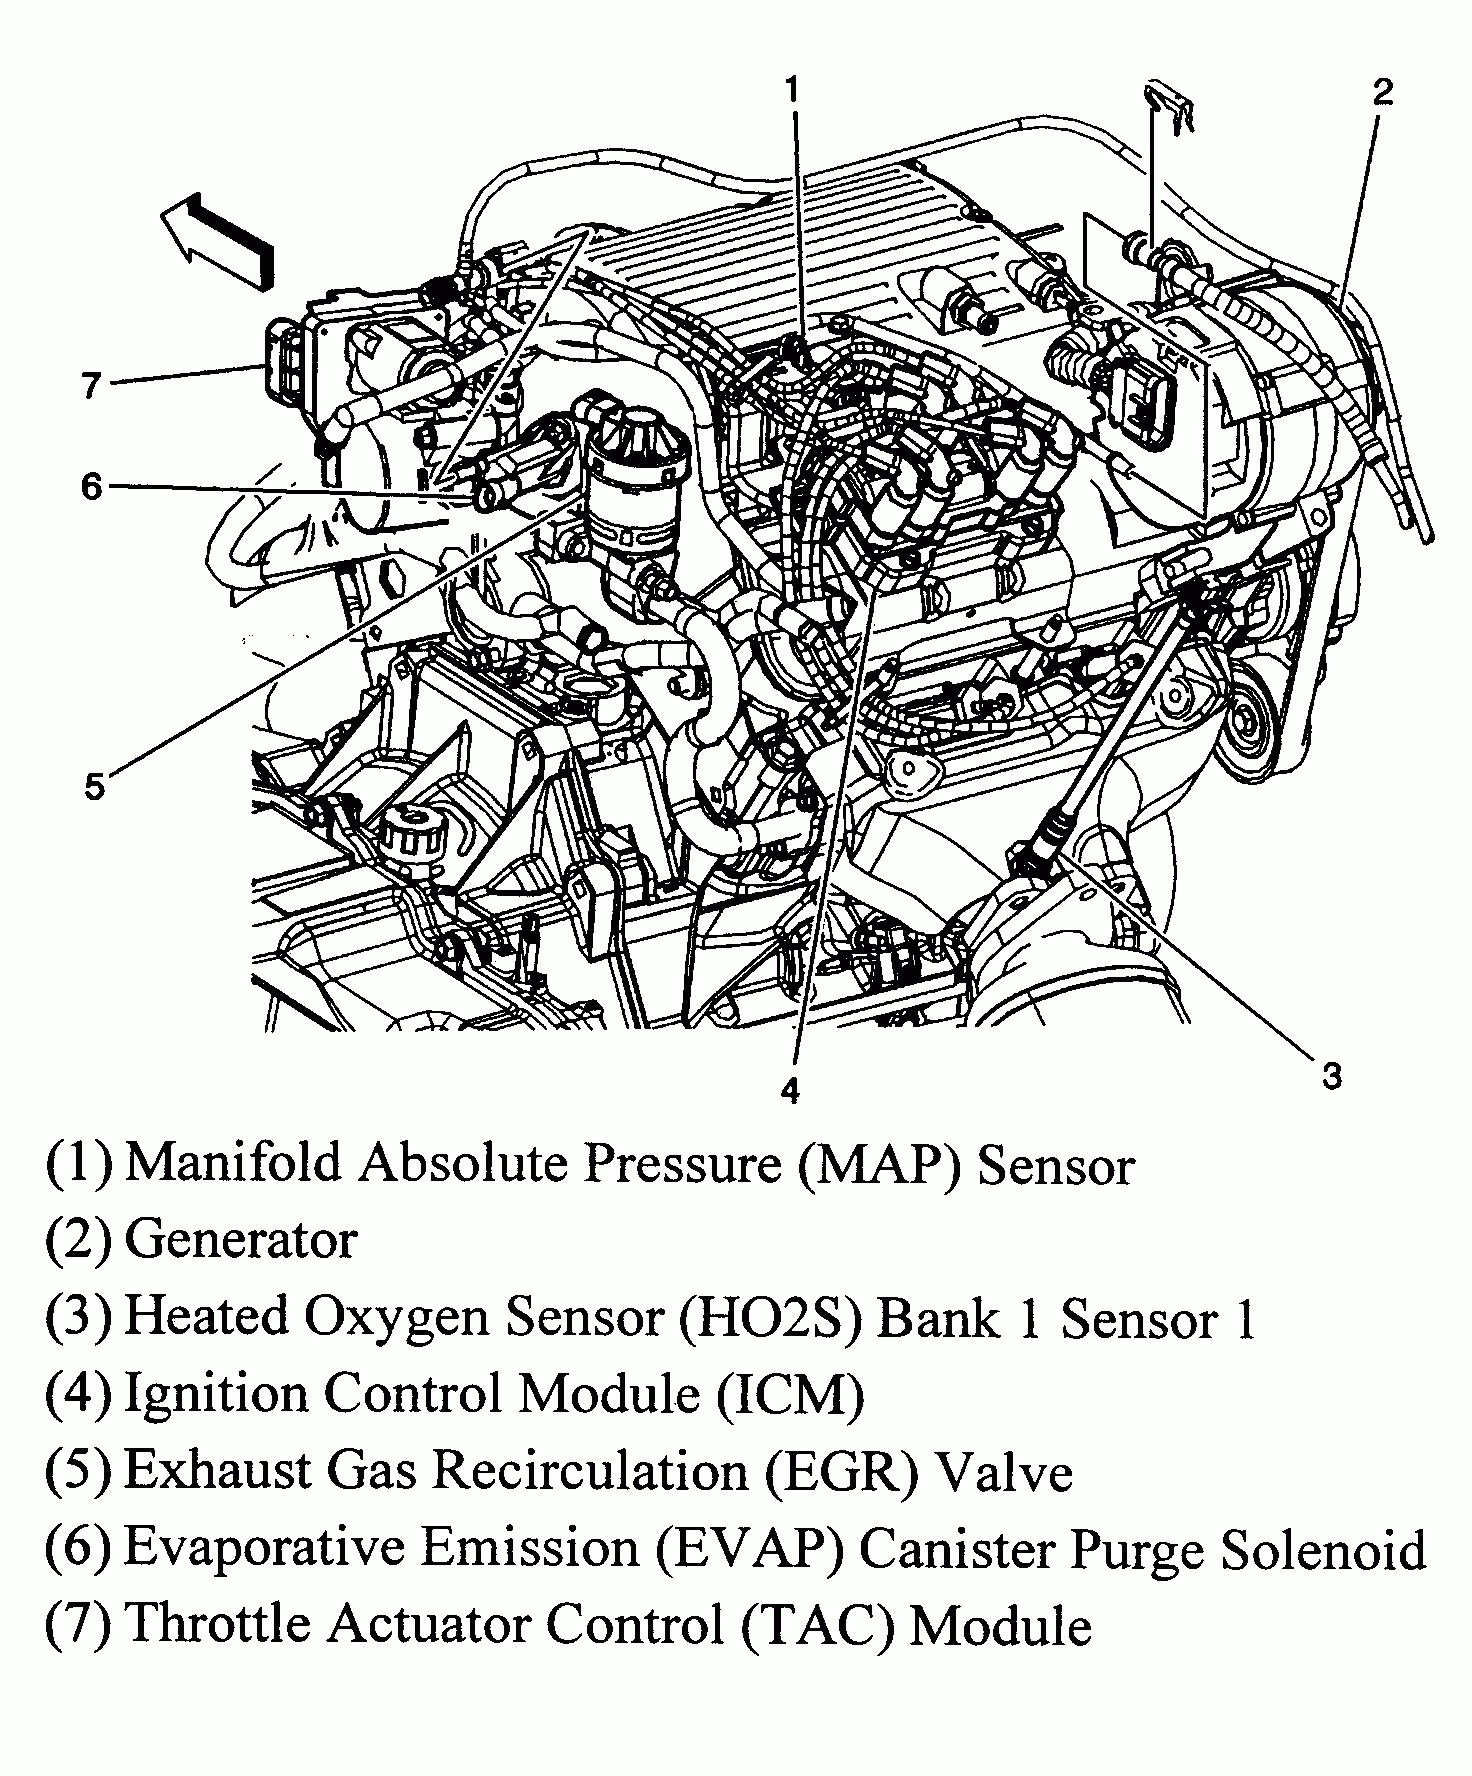 Cooling System Schematic Pontiac G6 Gt Data Wiring Diagram Grand Prix V6 Engine Chevy Hhr